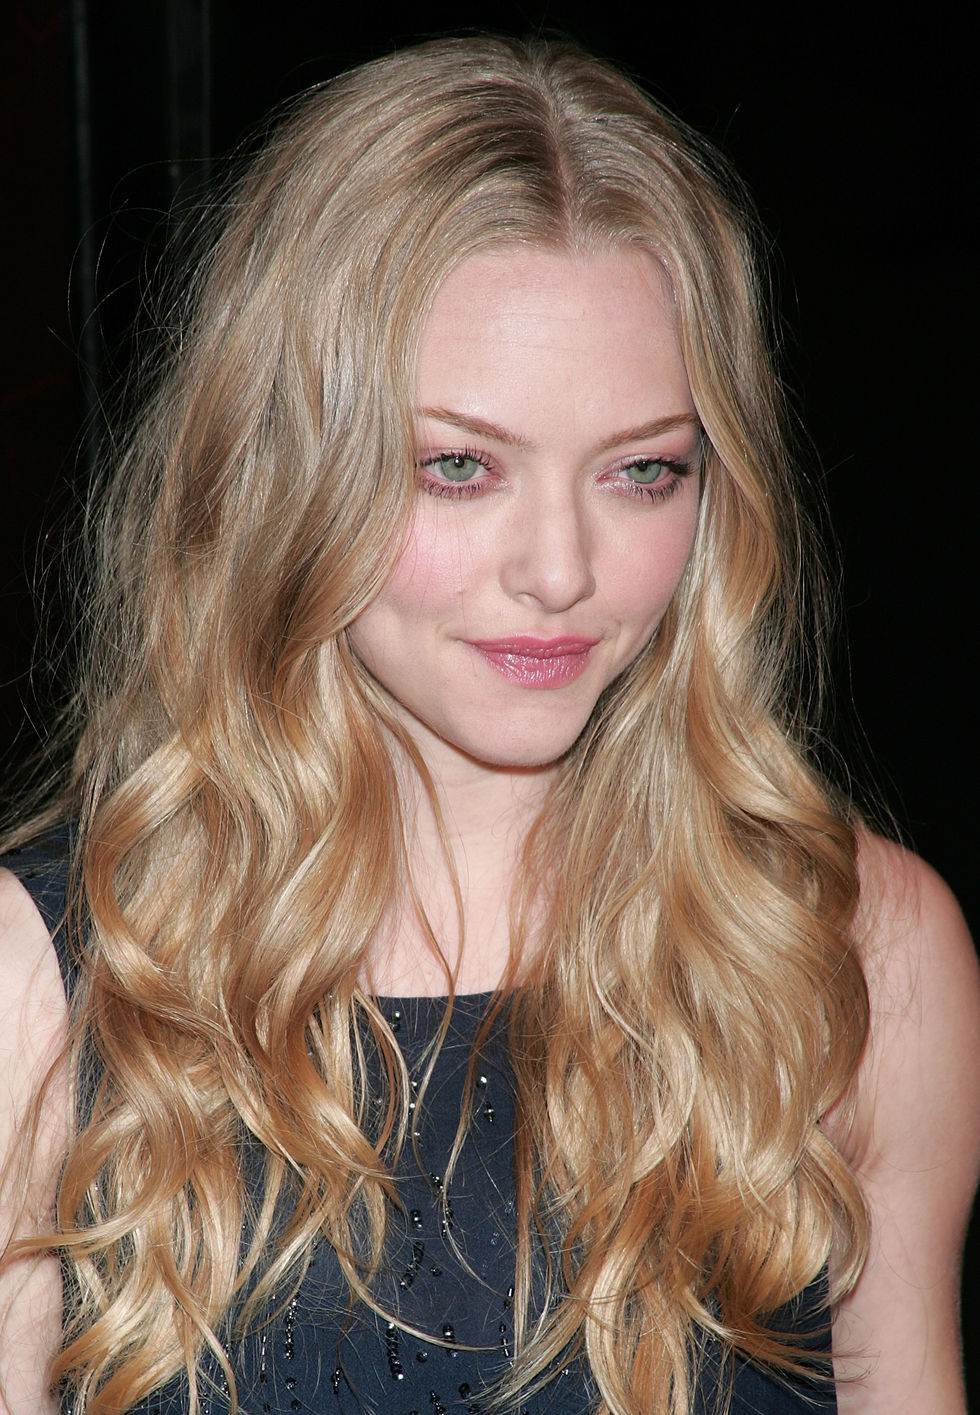 amanda-seyfried-hbos-big-love-3rd-season-premiere-in-hollywood-01